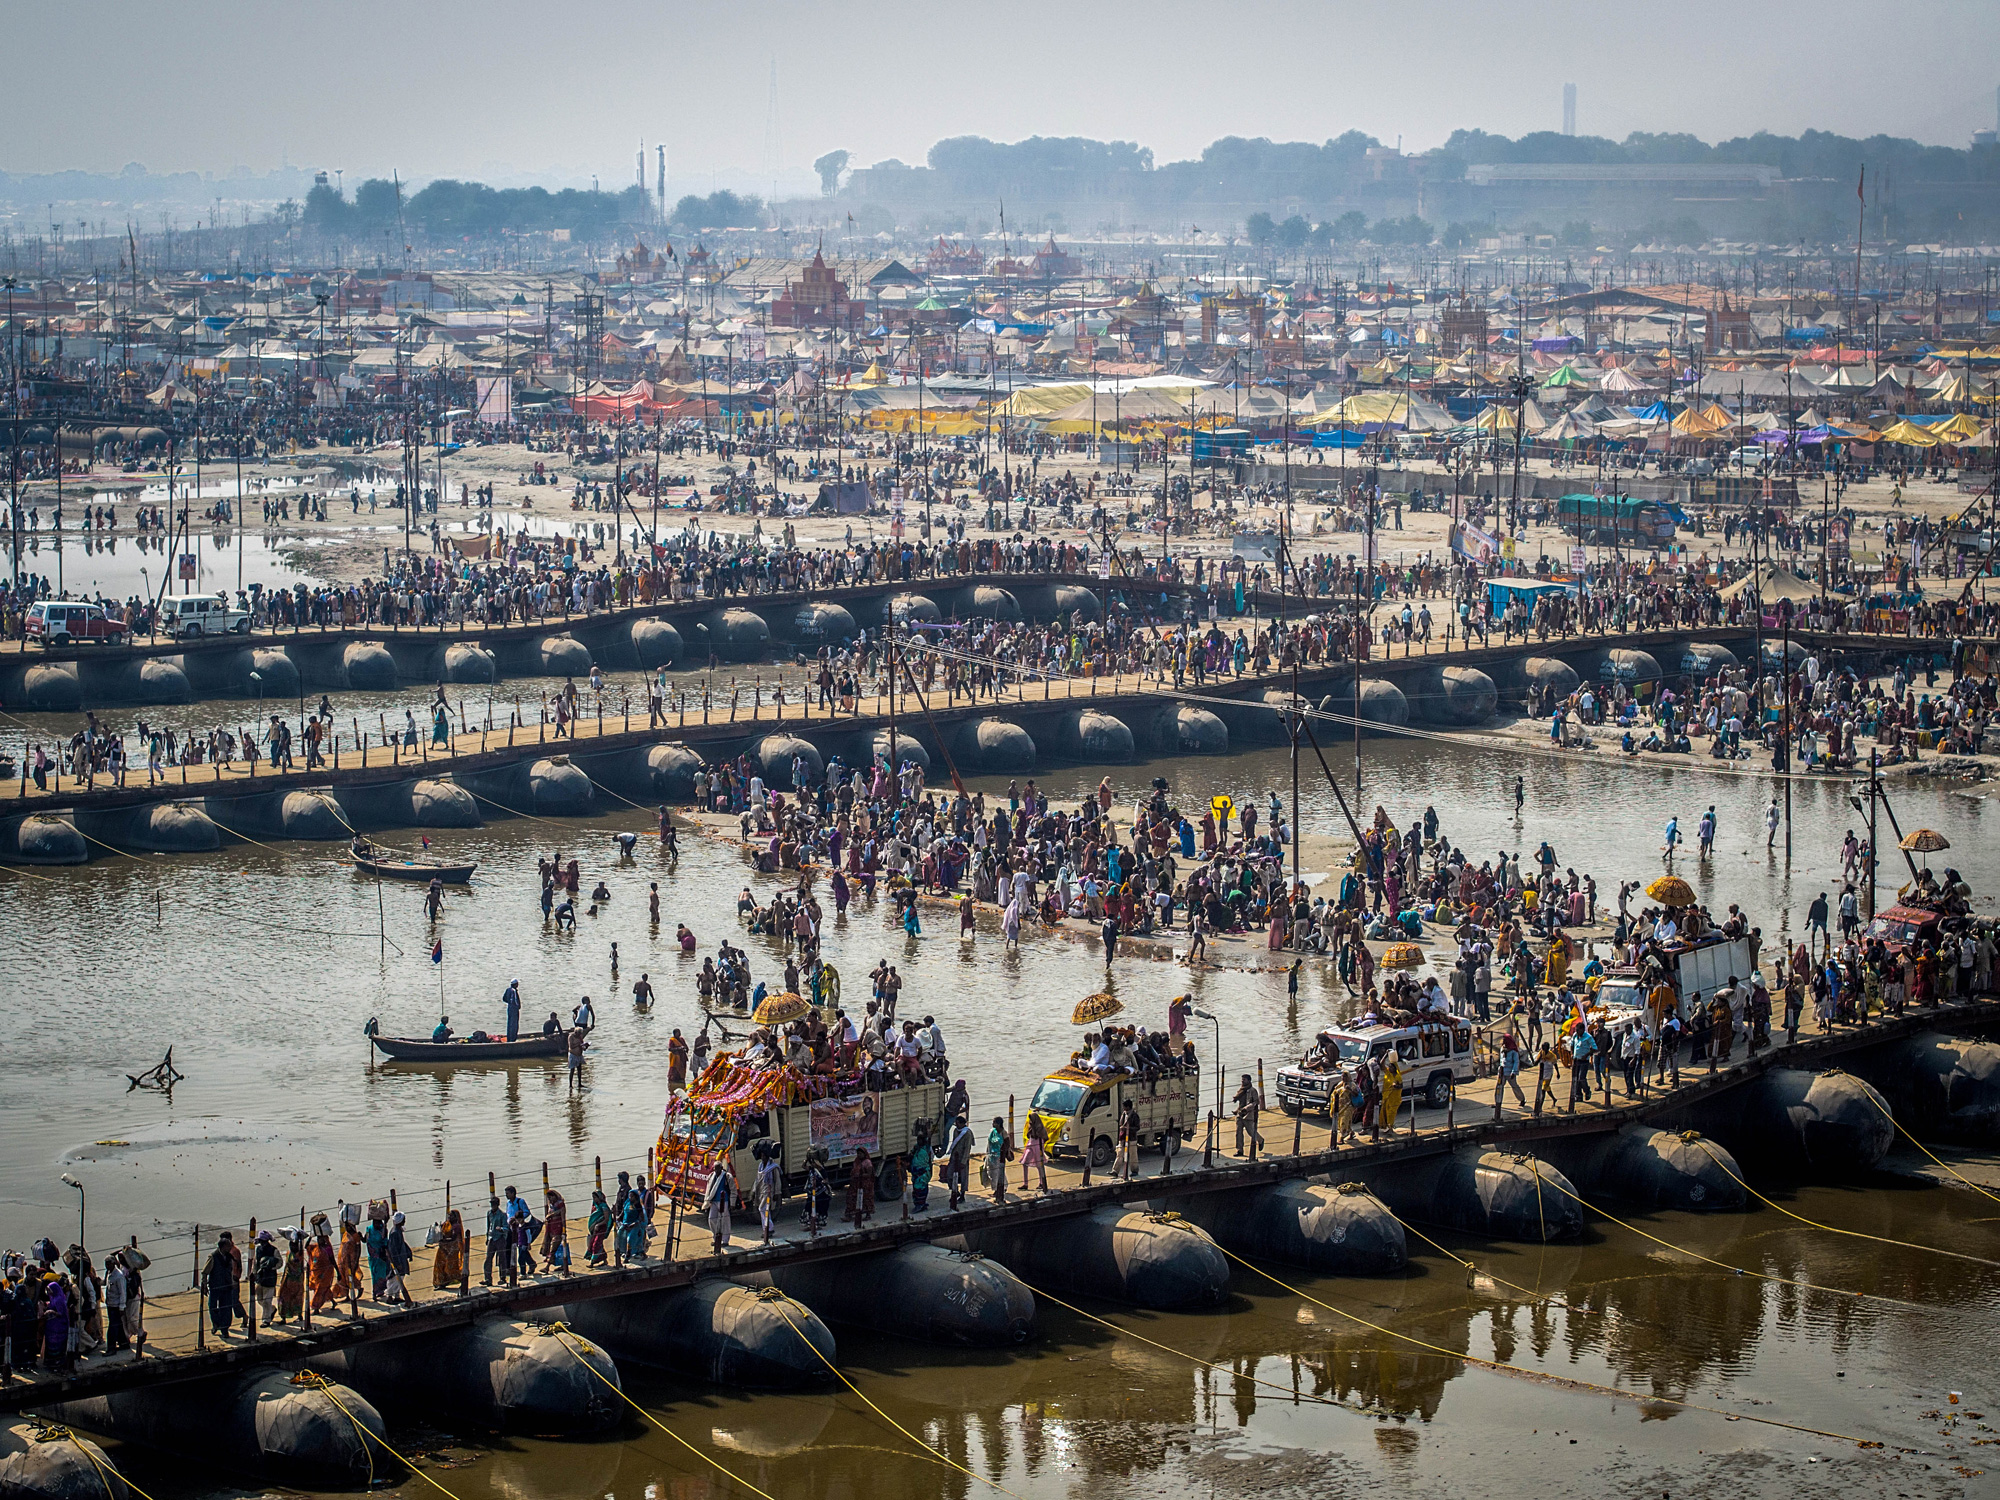 Thousands of Hindu devotees crossing the pontoon bridges over the Ganges River at Kumbh Mela festival in Allahabad, India, the world's largest religious gathering.